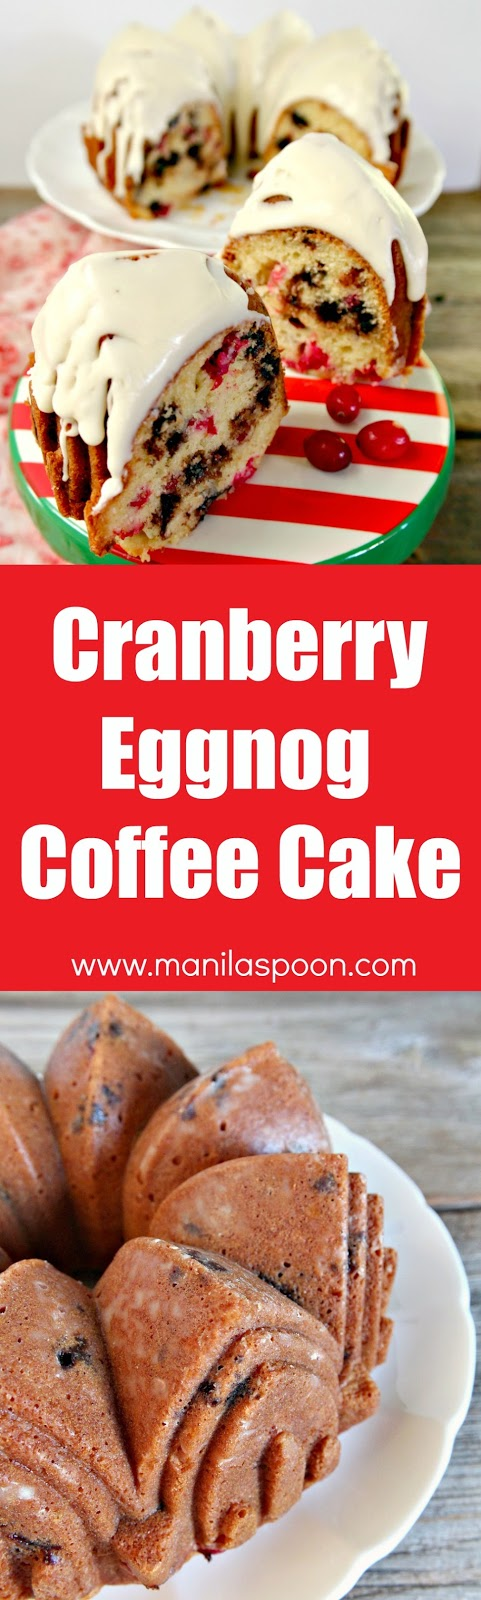 No need for a mixer to make this easy and delicious Cranberry Eggnog and Espresso (Chocolate) Chip Cake. The perfect dessert for Christmas and New Year. Great with your fave coffee drink, too! | manilaspoon.com